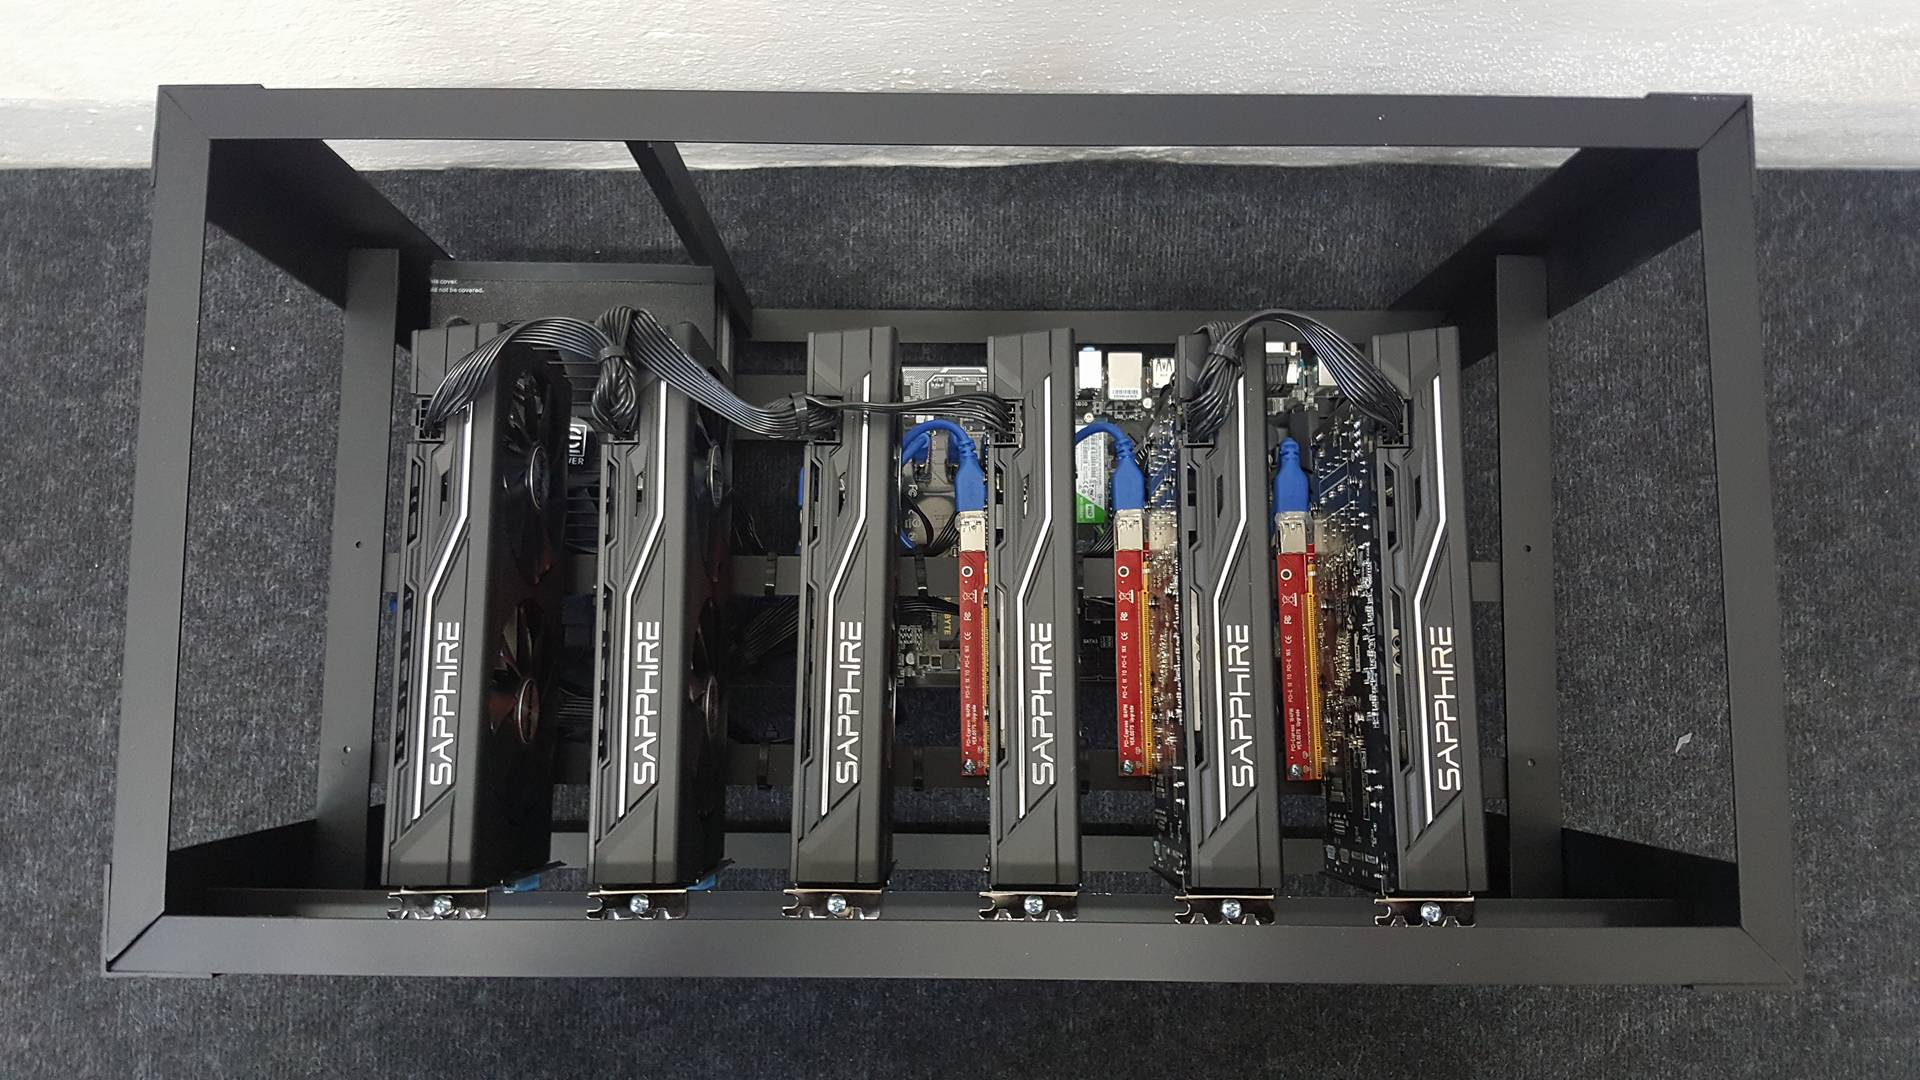 Bitcoin Mining Rig - For sale